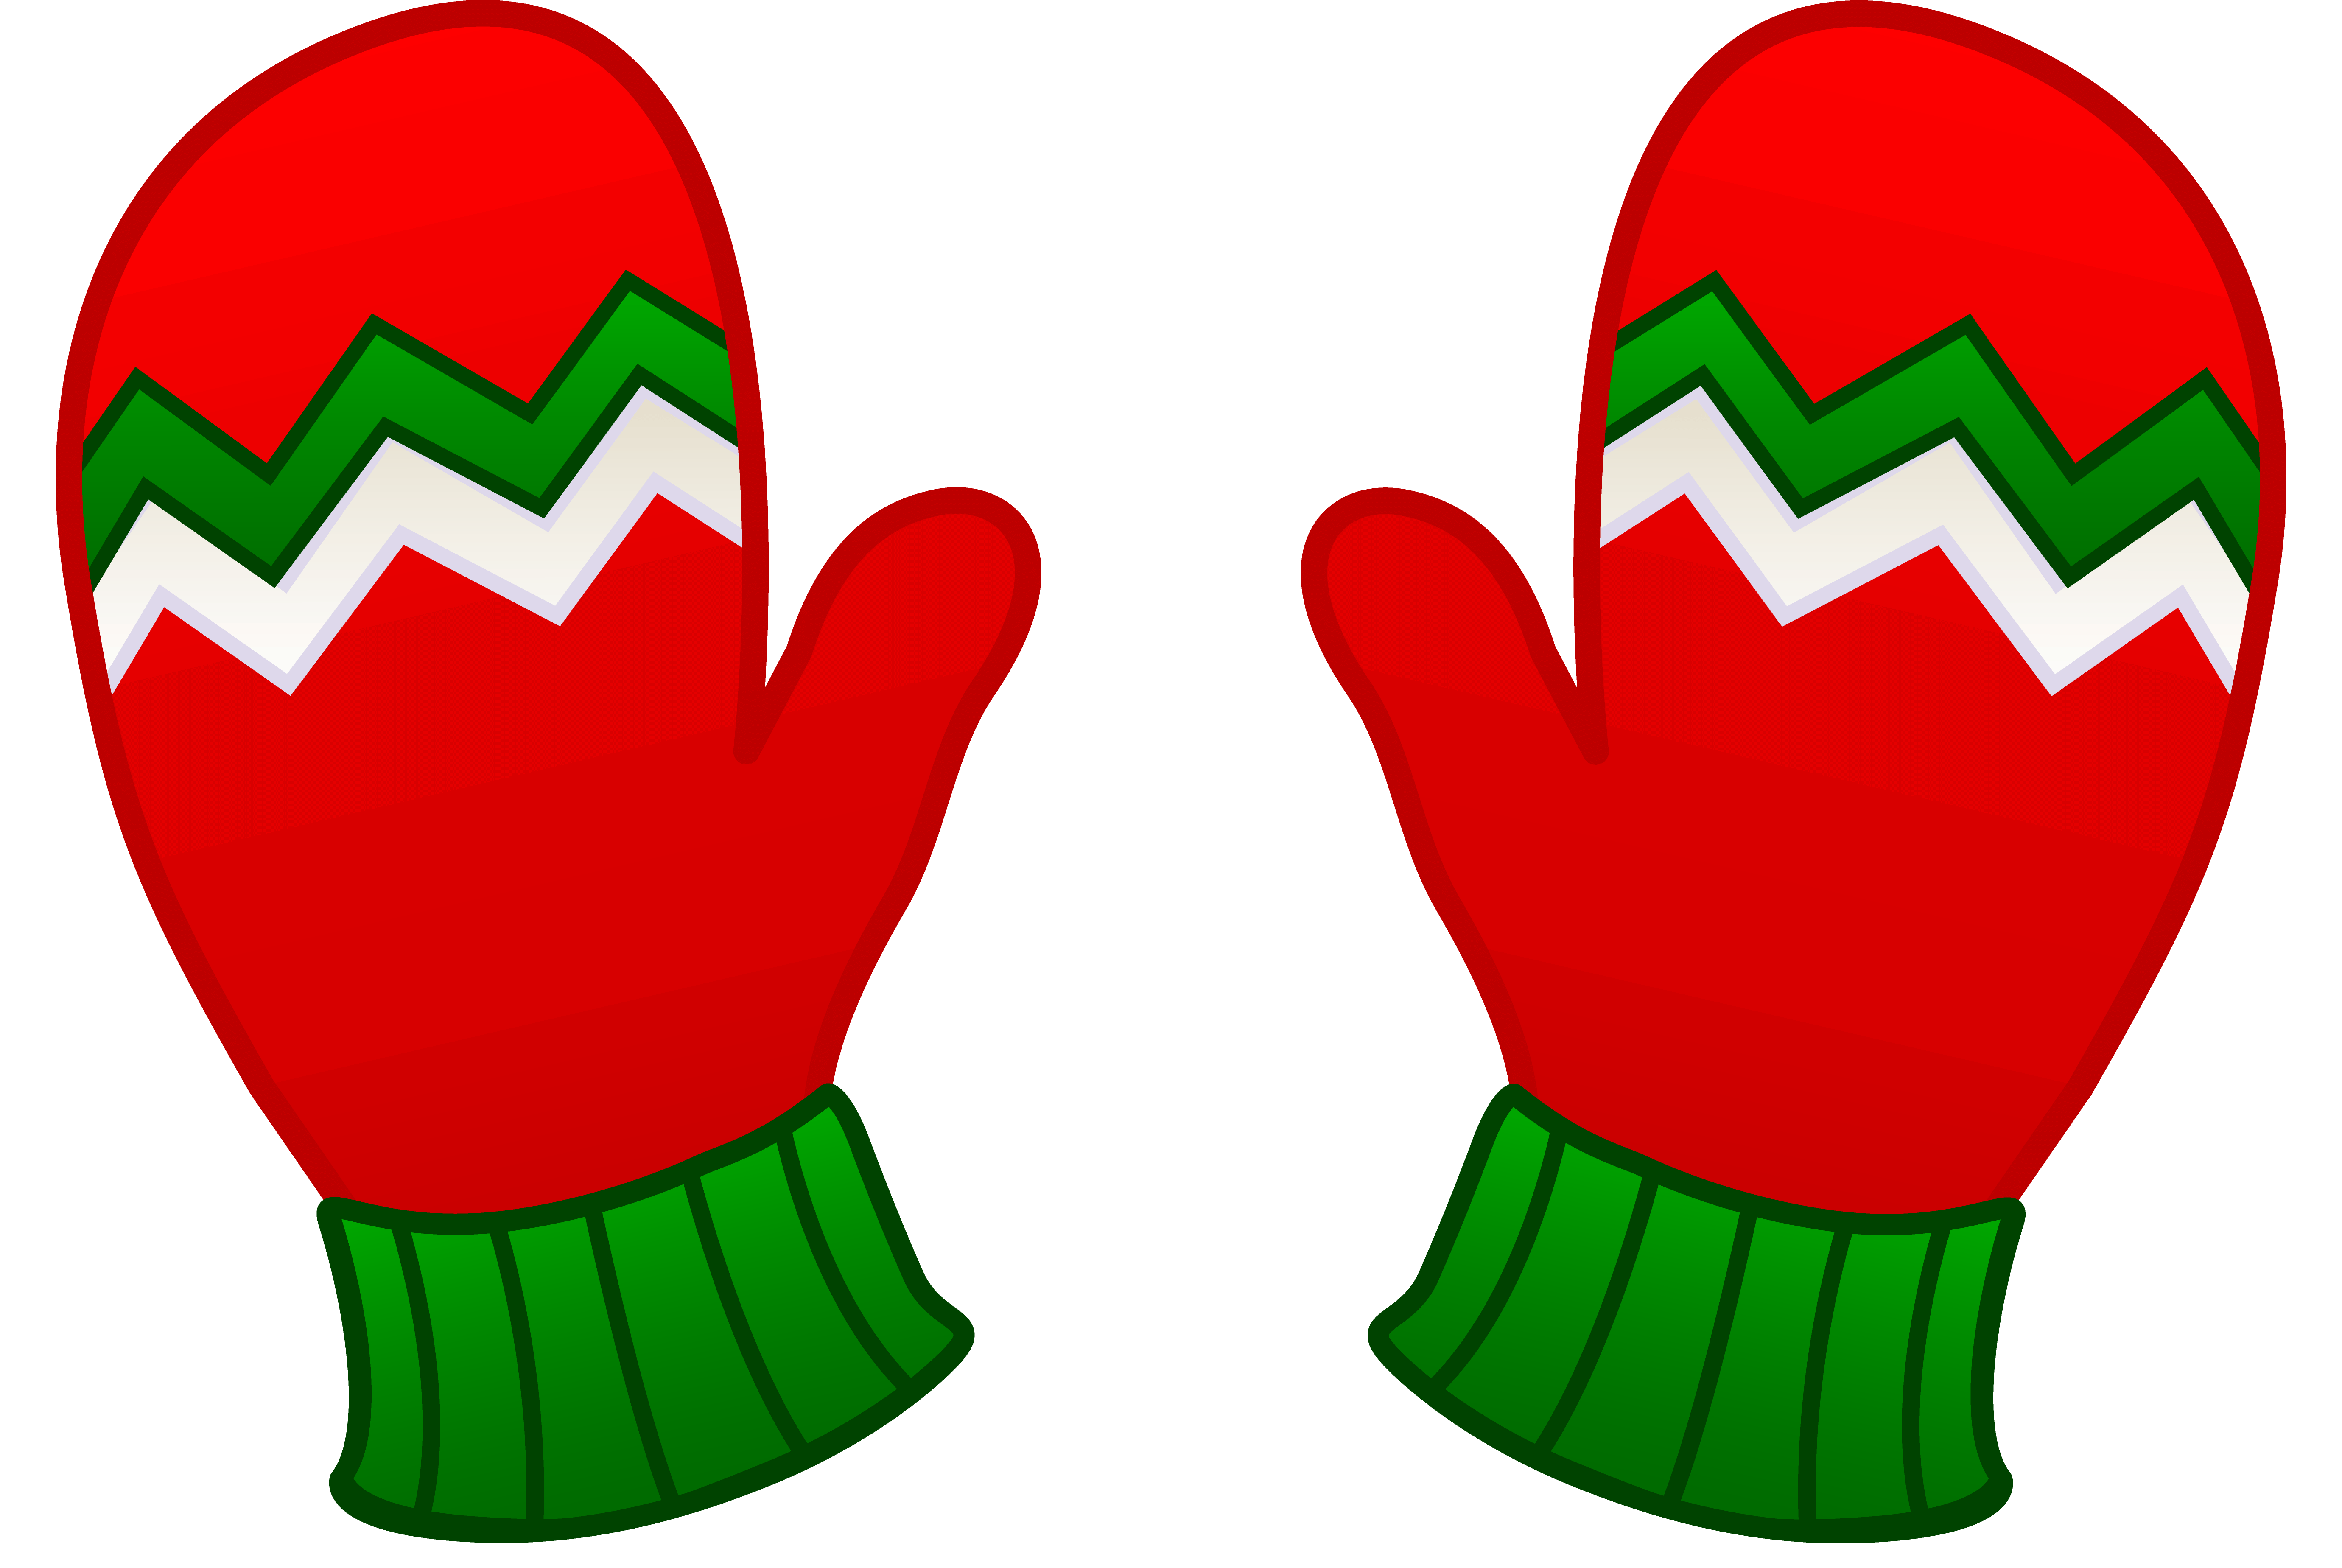 Mittens clipart cloth. Gloves cold cliparts zone